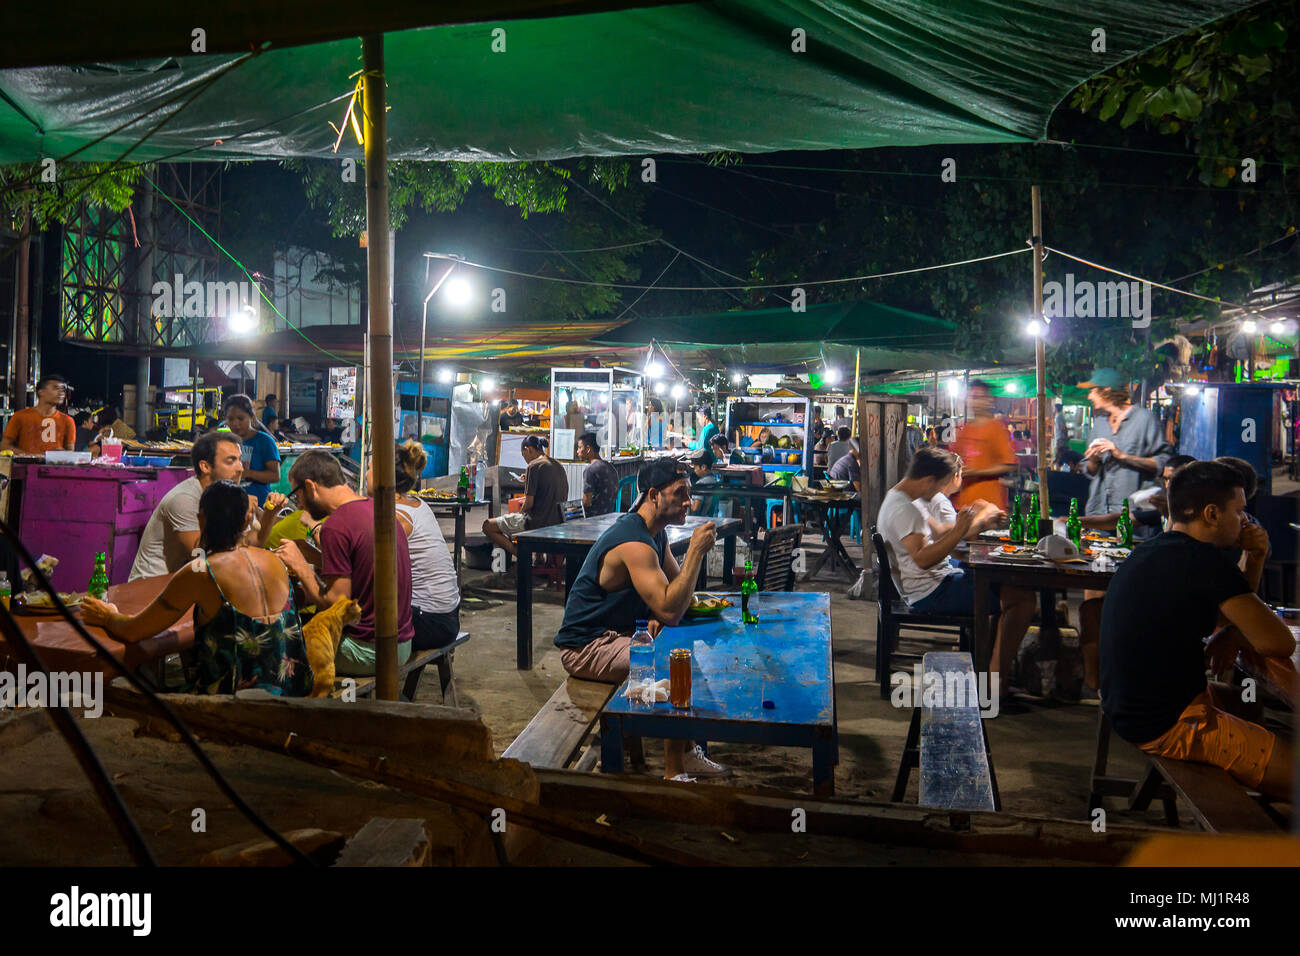 European turists and local residents sitting in the light of electrical bulbs at long tables having various streetfood in an indonesian nightmarket, a - Stock Image